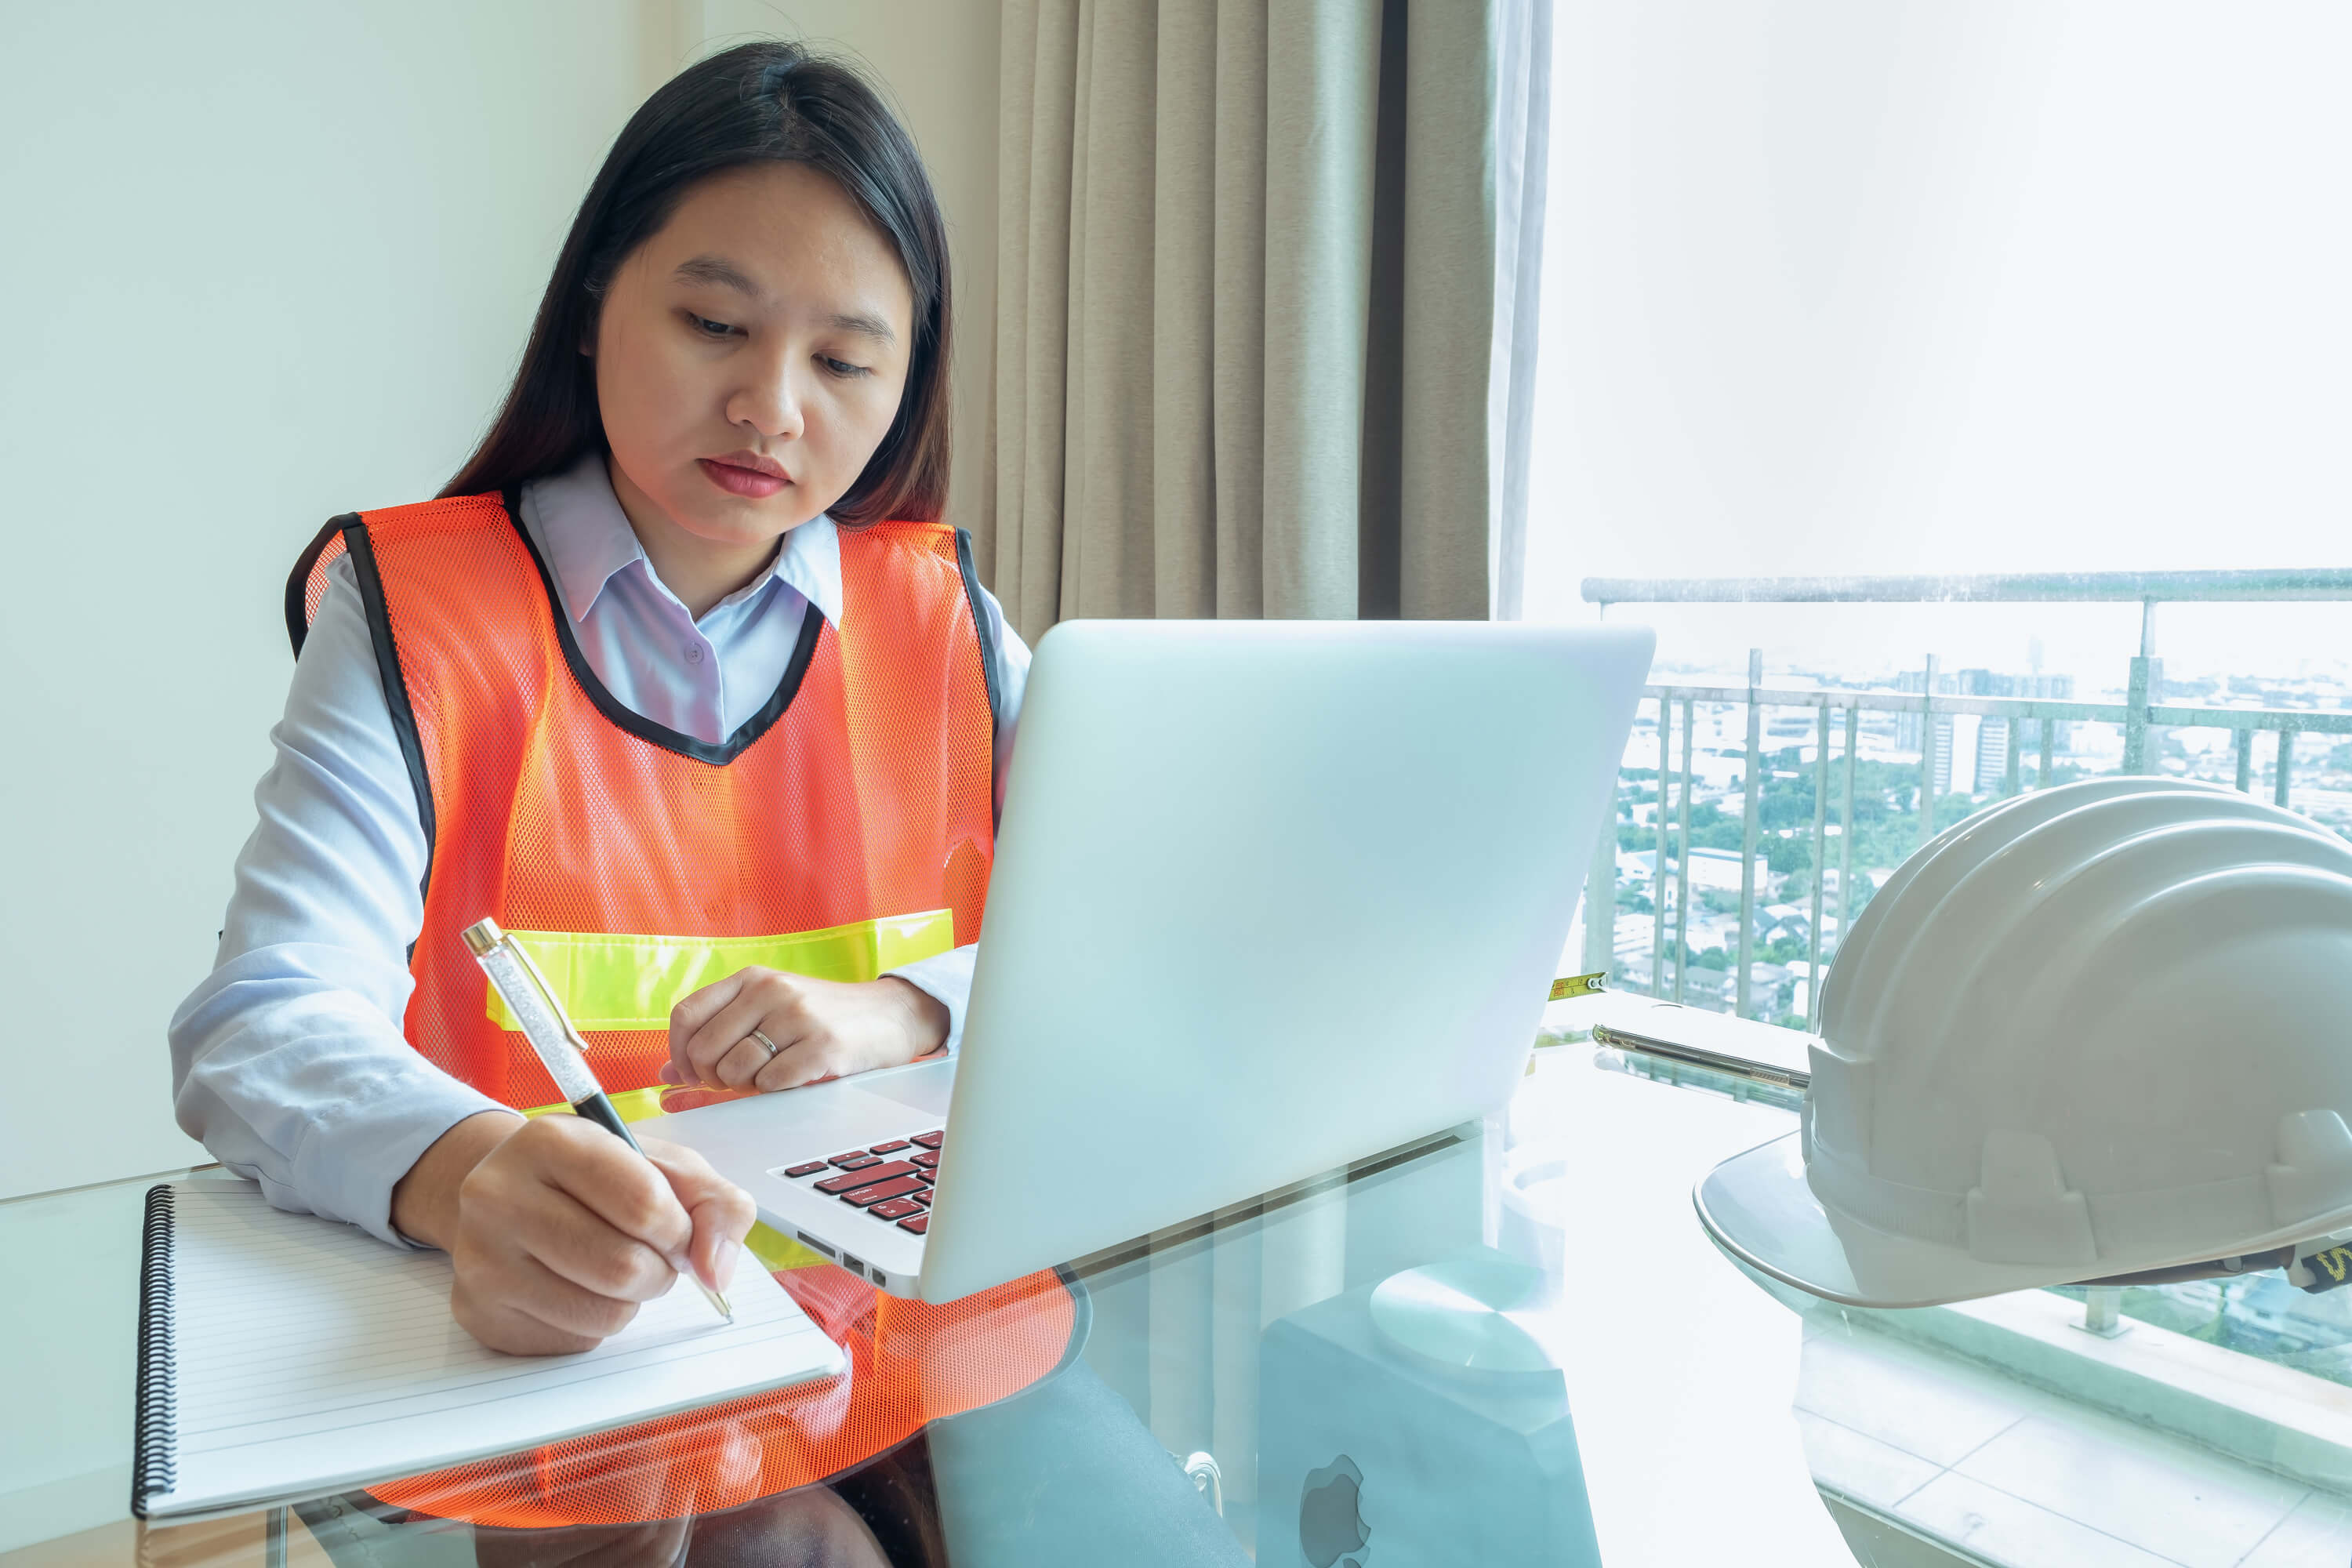 Female maintenance worker in construction orange vest writing notes from a laptop computer Photo